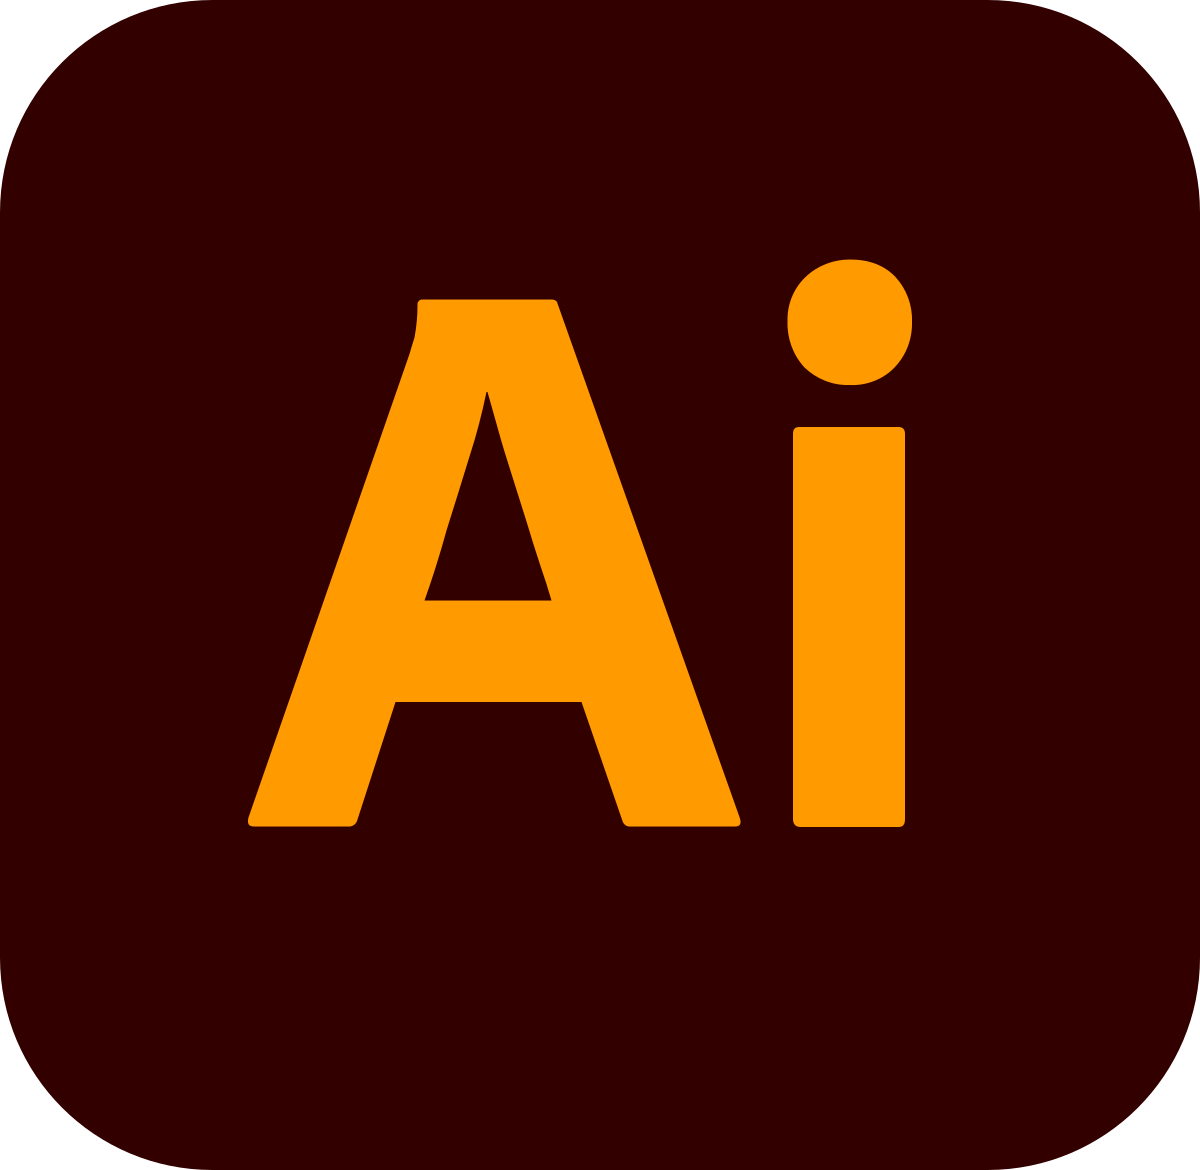 Adobe Illustrator CC 2021 v25.2.0.220 Full version